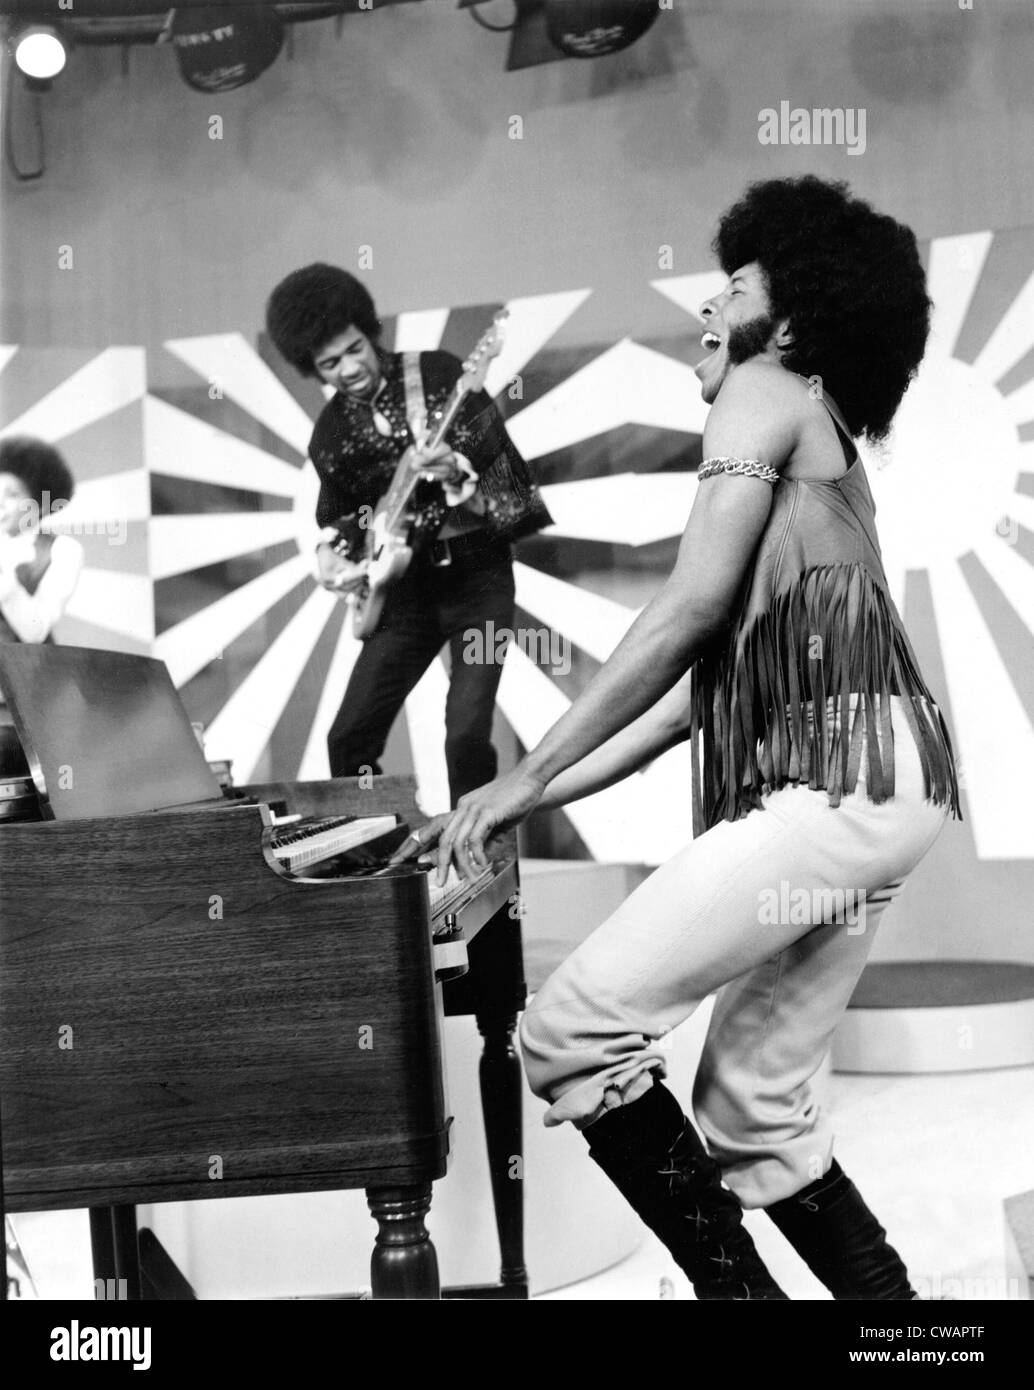 SLY AND THE FAMILY STONE performing Everyday People on UPBEAT, 1972.. Courtesy: CSU Archives / Everett Collection - Stock Image